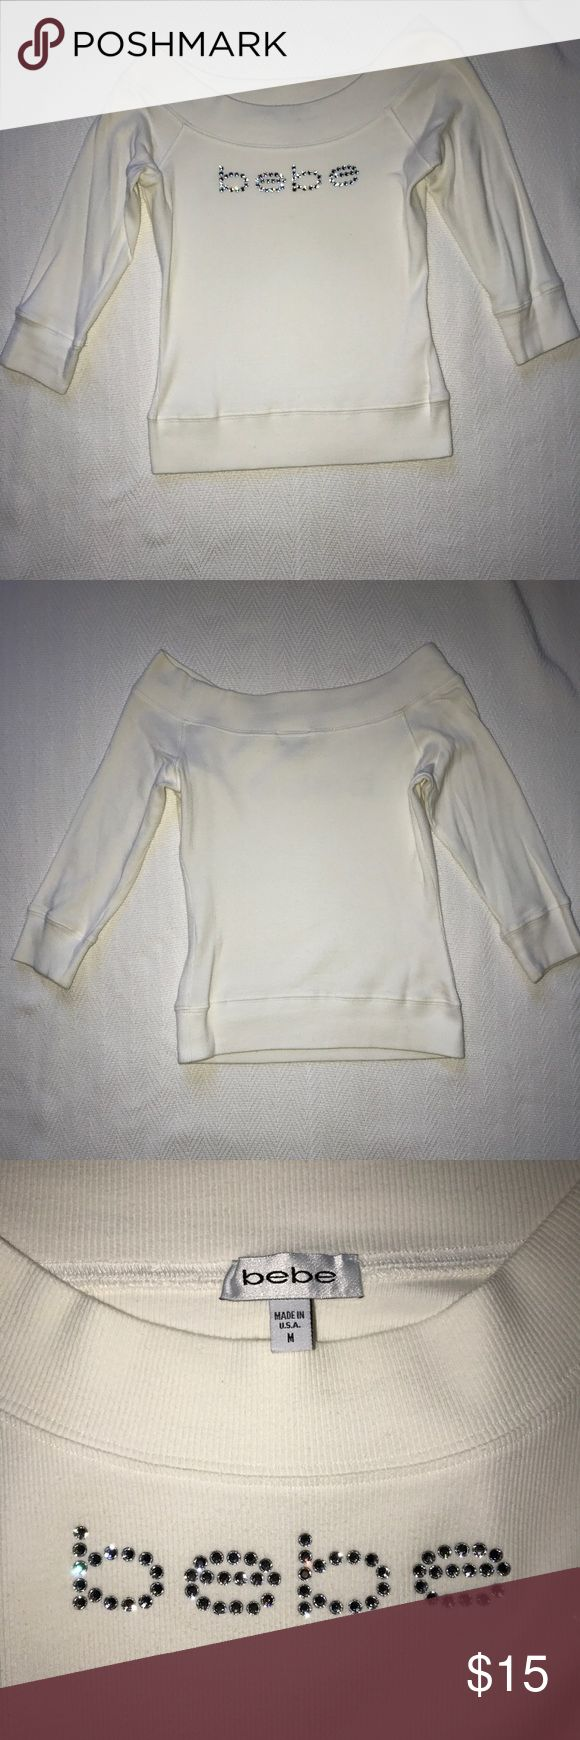 "Early Xmas sale 🎄❗️BEBE WHITE sweater Size M. Gently used BEBE white sweater. Size L, sweater measures 16in"" from top of chest to bottom of shirt. Bottom measures 13in"" in width. BEBE sizes run small this sweater will fit a size S or M in tops. Stretchy material. 😀 bebe Sweaters Crew & Scoop Necks"